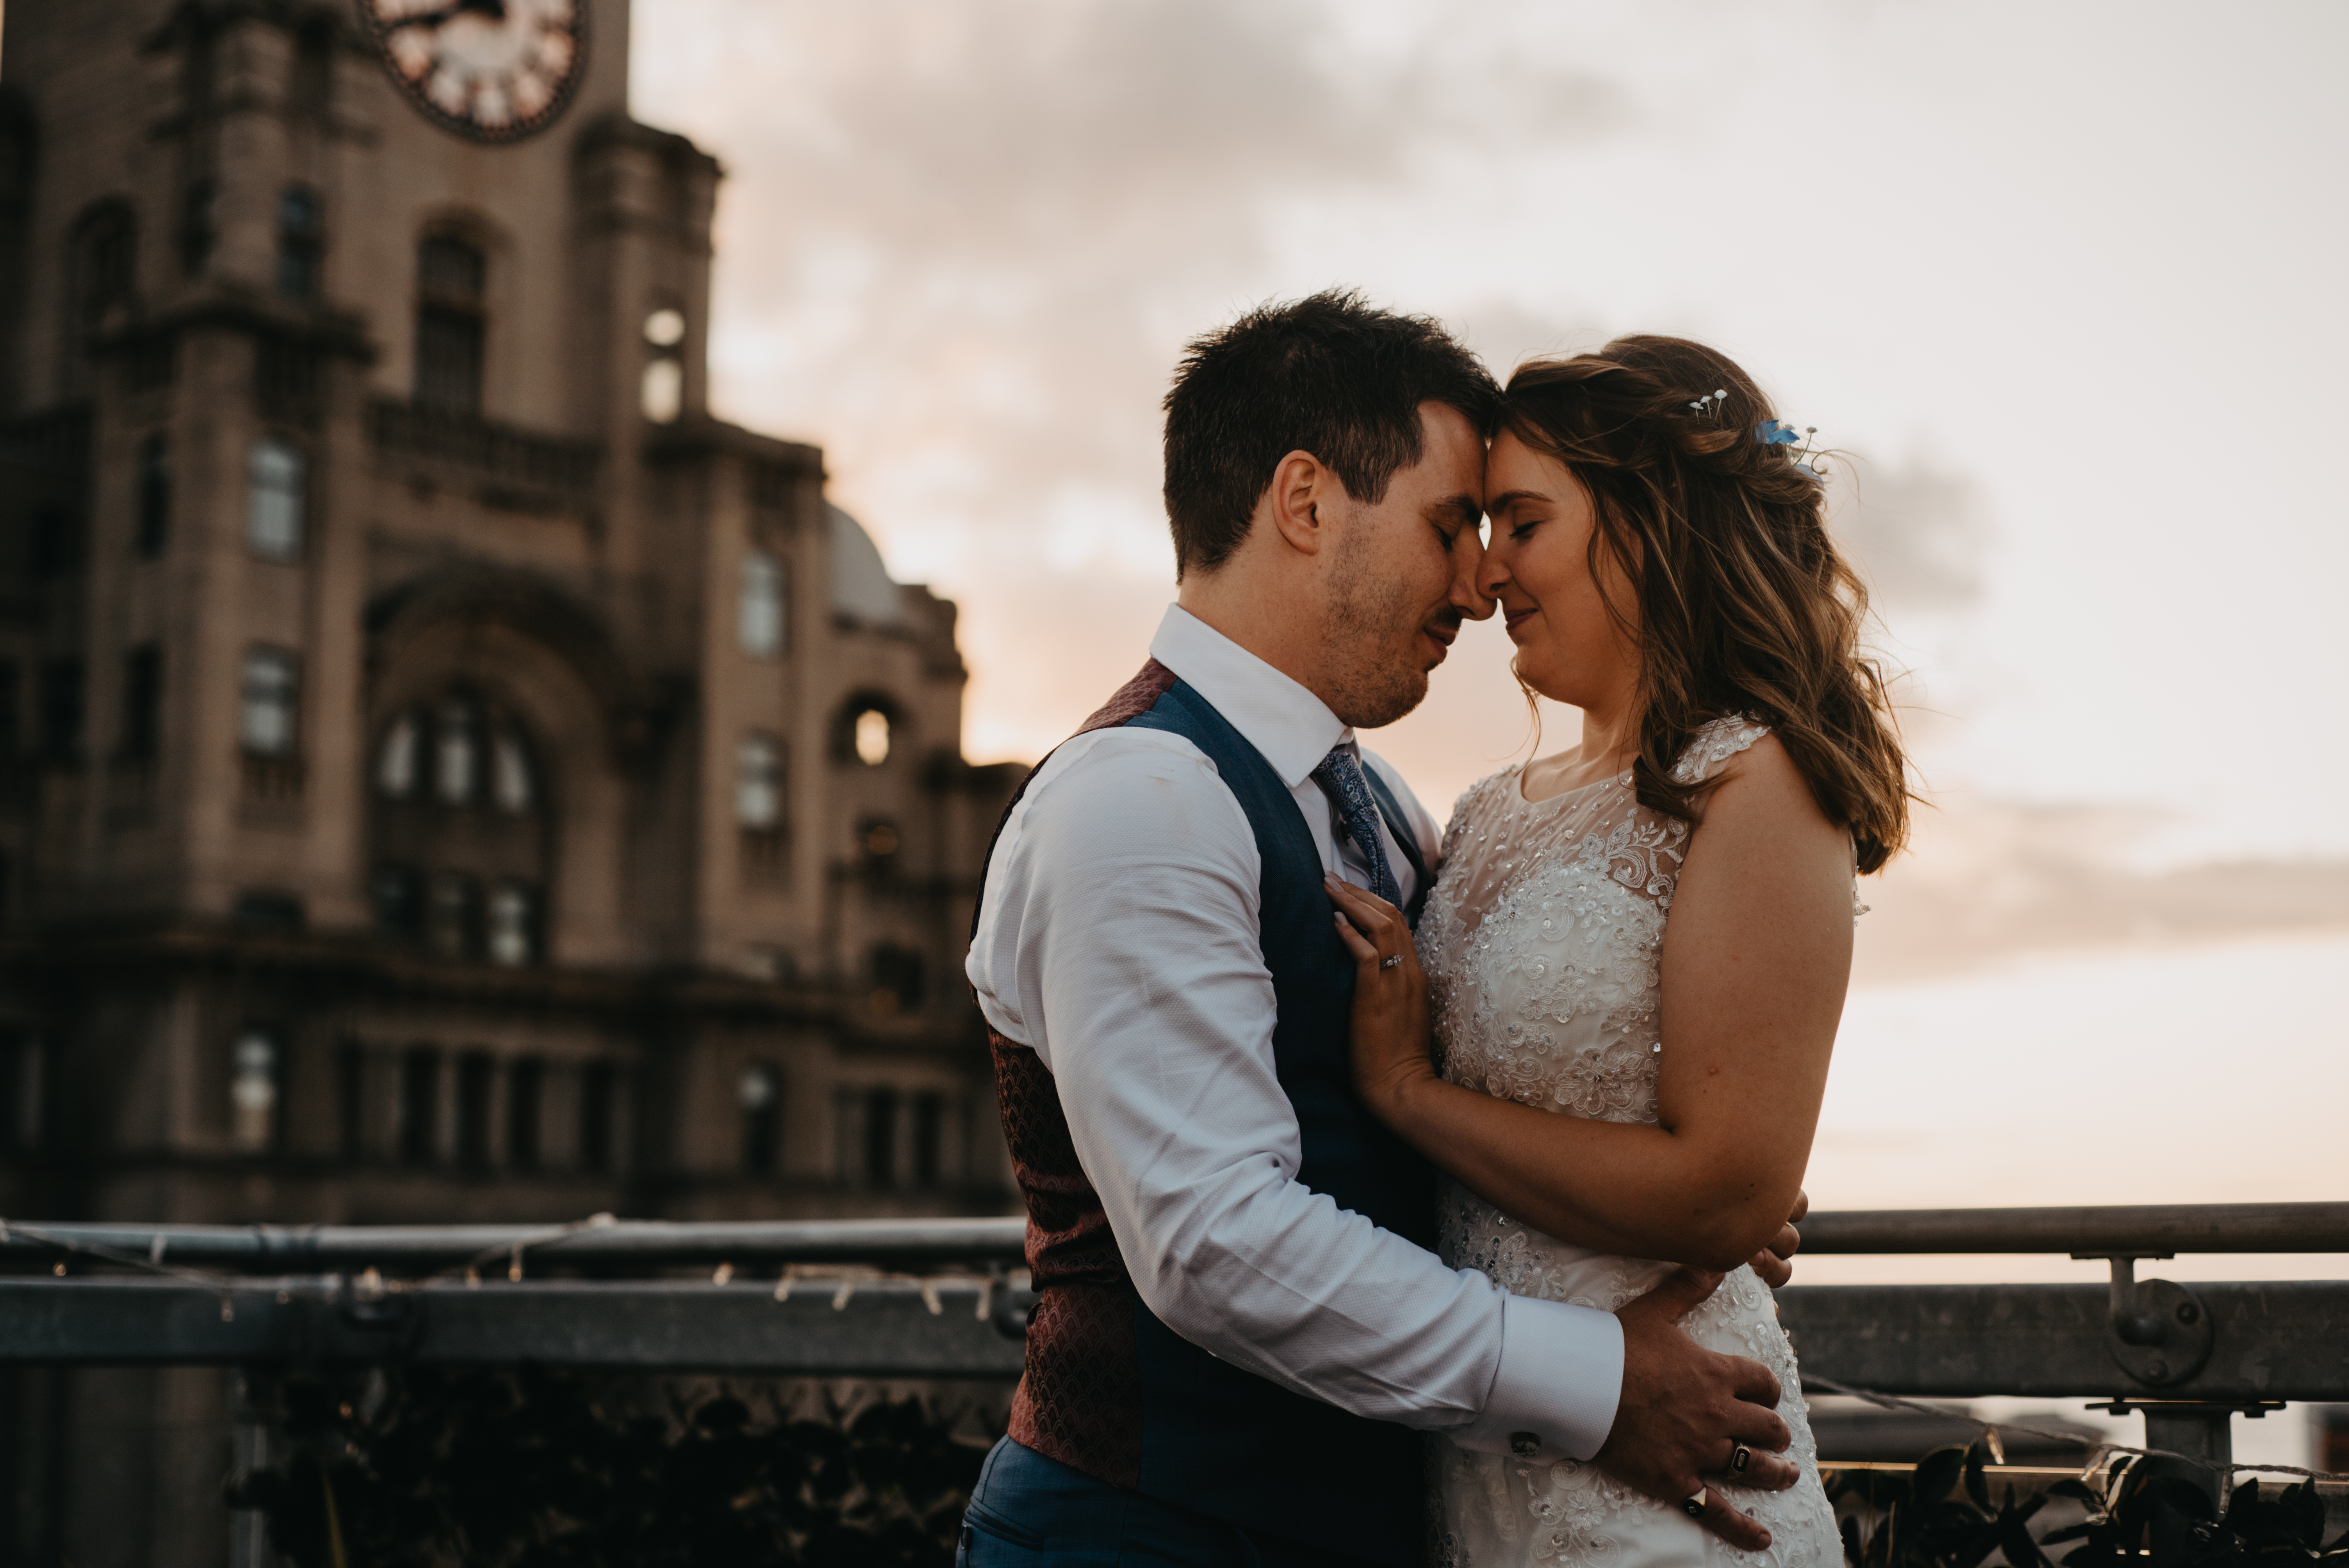 Bride and groom cuddles with heads pressed together on a rooftop in Liverpool